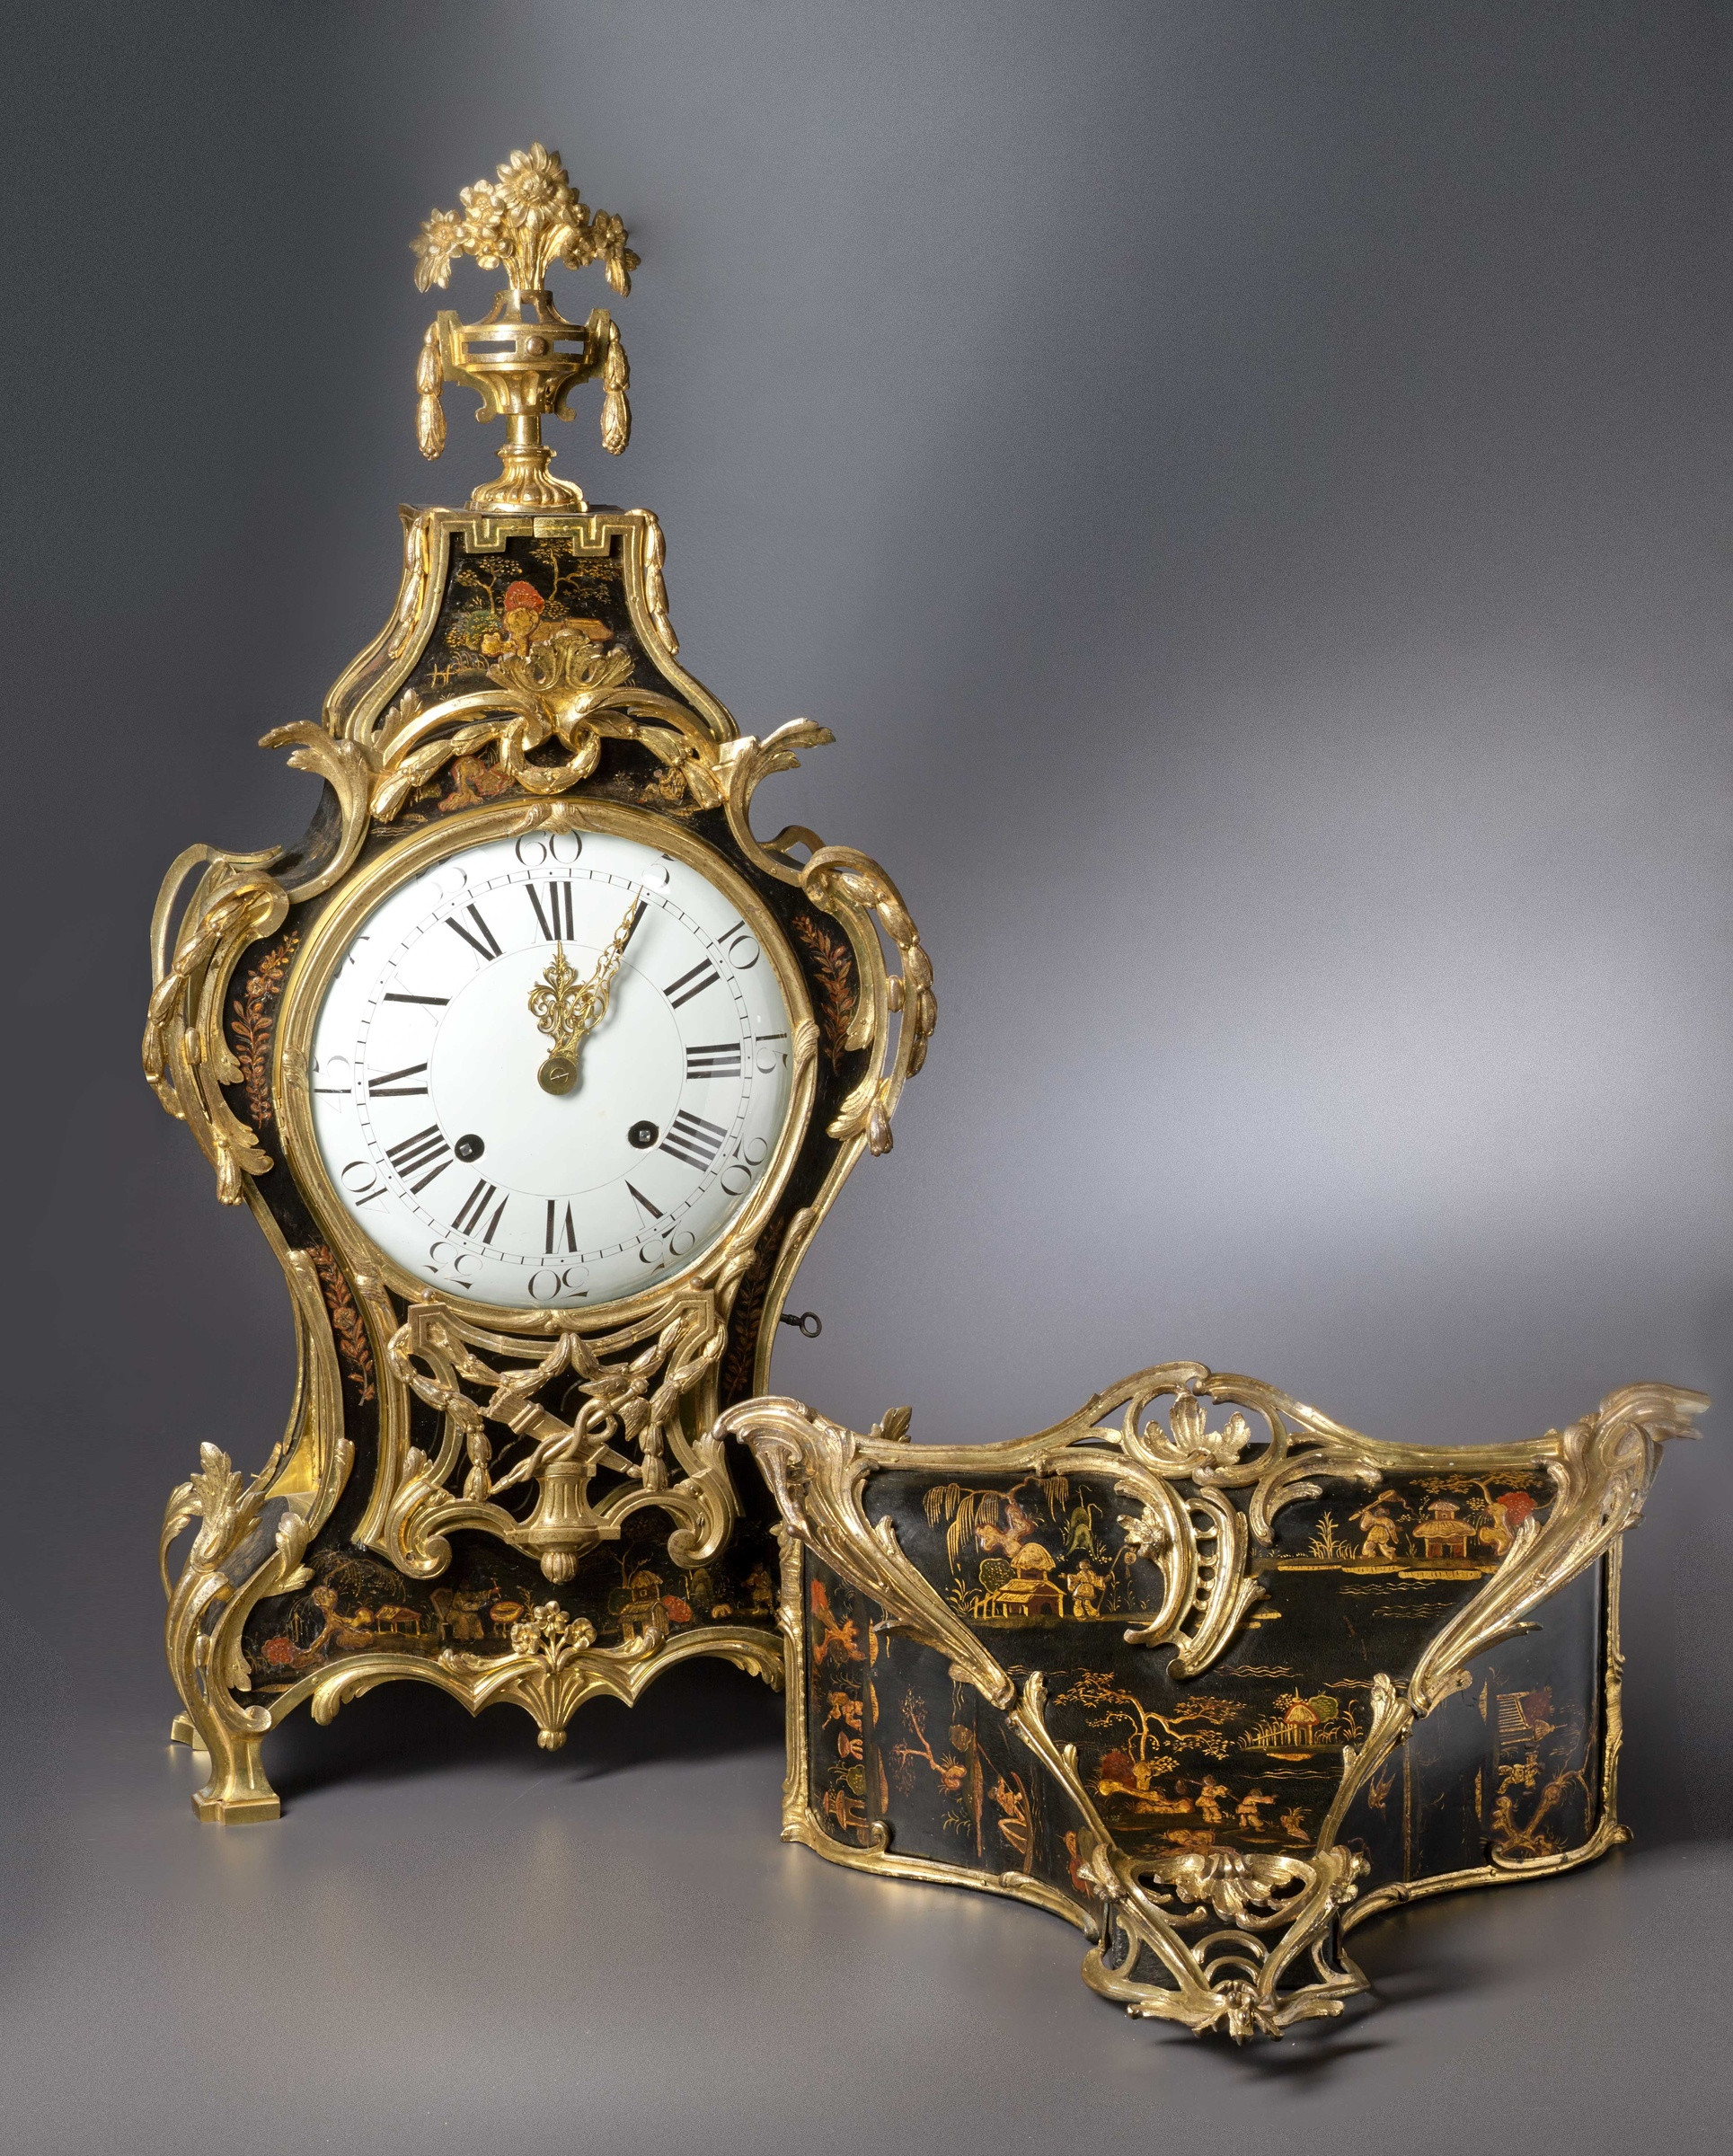 28 Stylish Japanese Bronze Vase 2021 free download japanese bronze vase of adrien jarame jollain a louis xv transitional louis xvi grande regarding a louis xv transitional louis xvi grande cartel clock with bracket housed in a case by